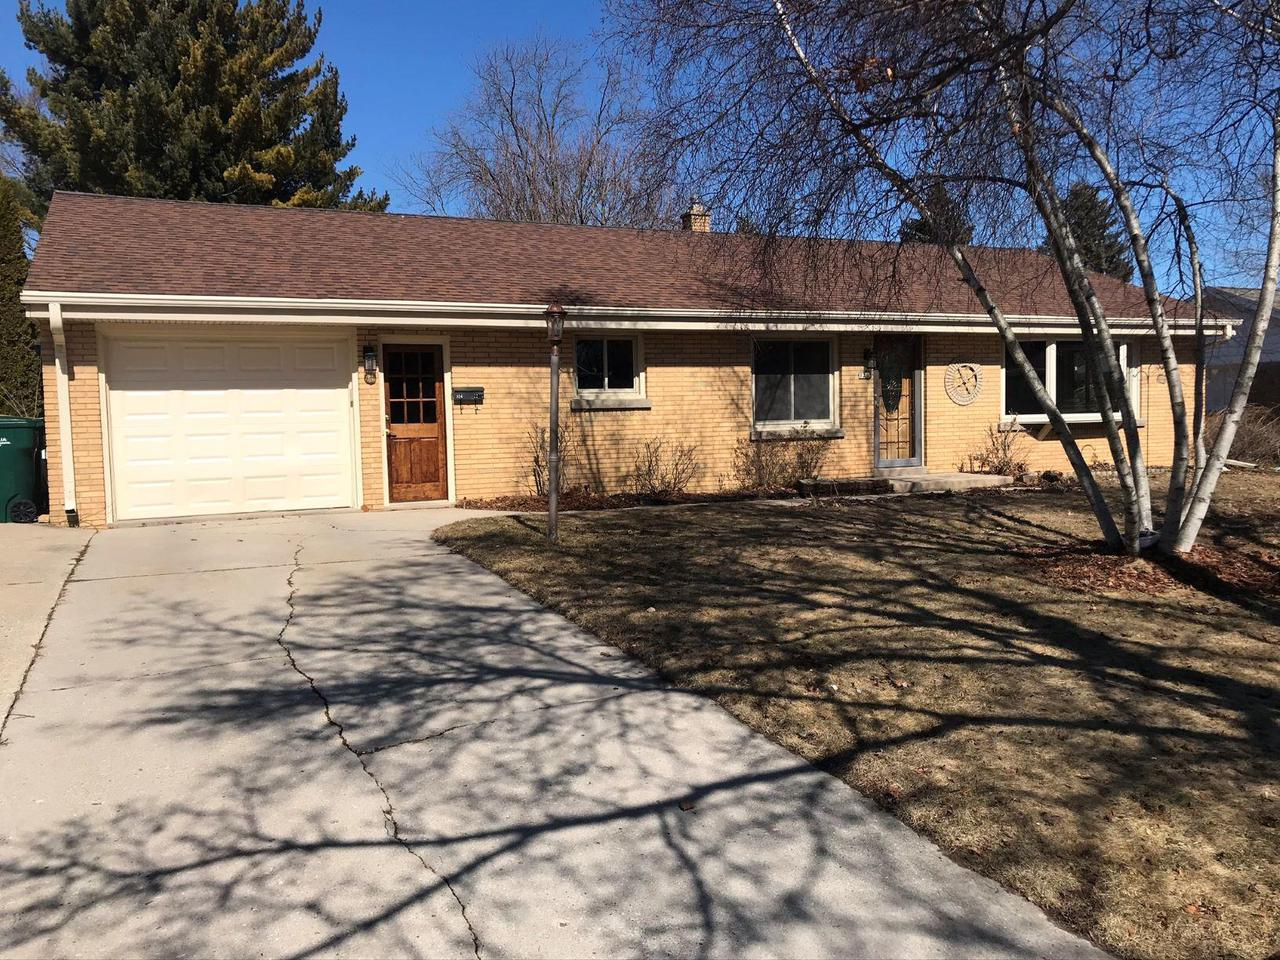 Quality built all brick ranch in a great neighborhood. Hardwood floors on the interior bedrooms and nicely updated windows. Great backyard for entertaining. Unfinished basement already has a 3/4 bath that can be easily updated and put to good use!